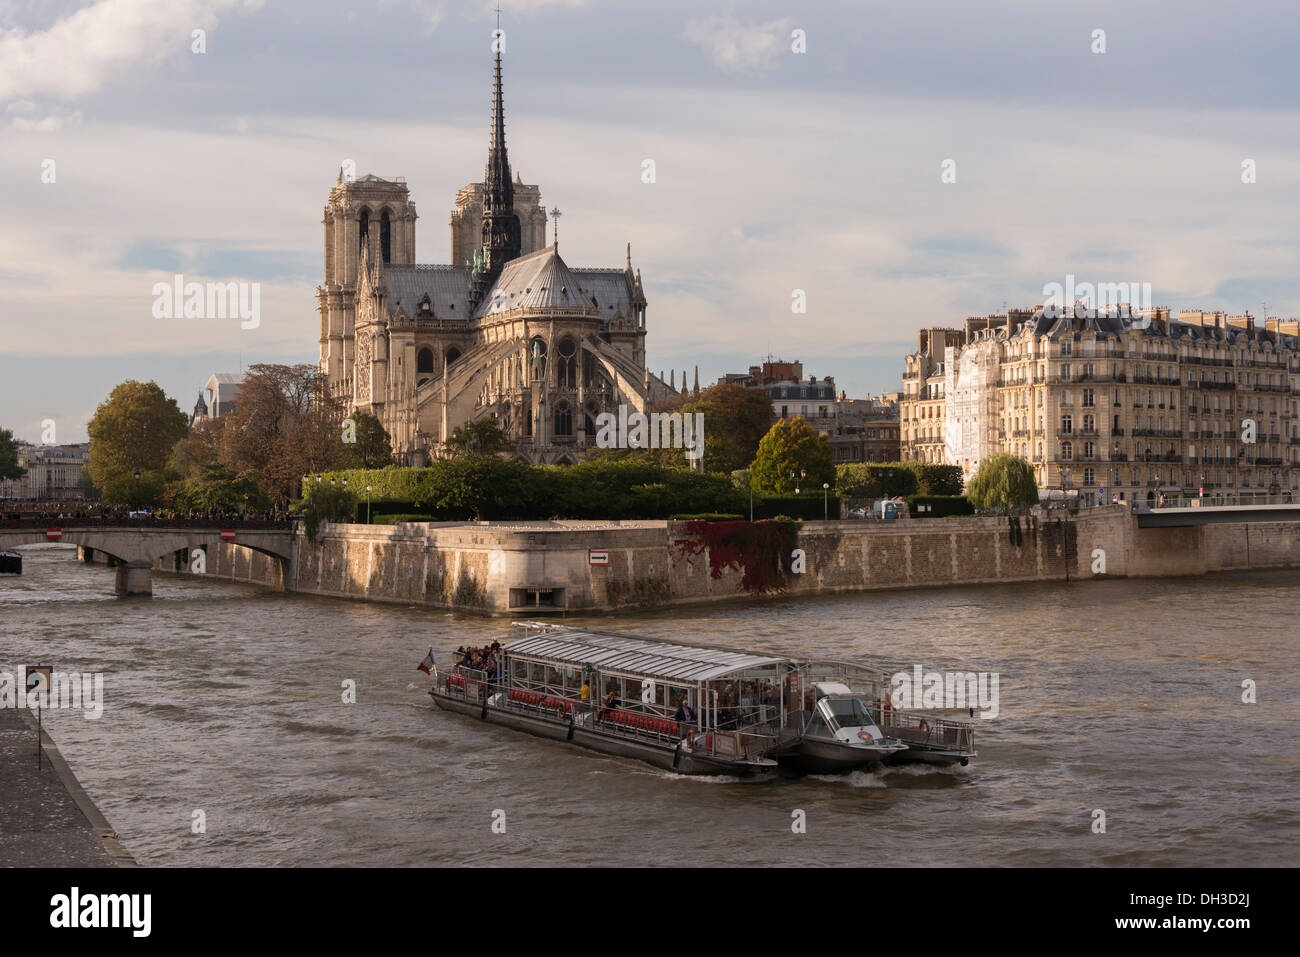 notre dame and bateau mouche on the river seine autumn in paris stock photo 62156378 alamy. Black Bedroom Furniture Sets. Home Design Ideas